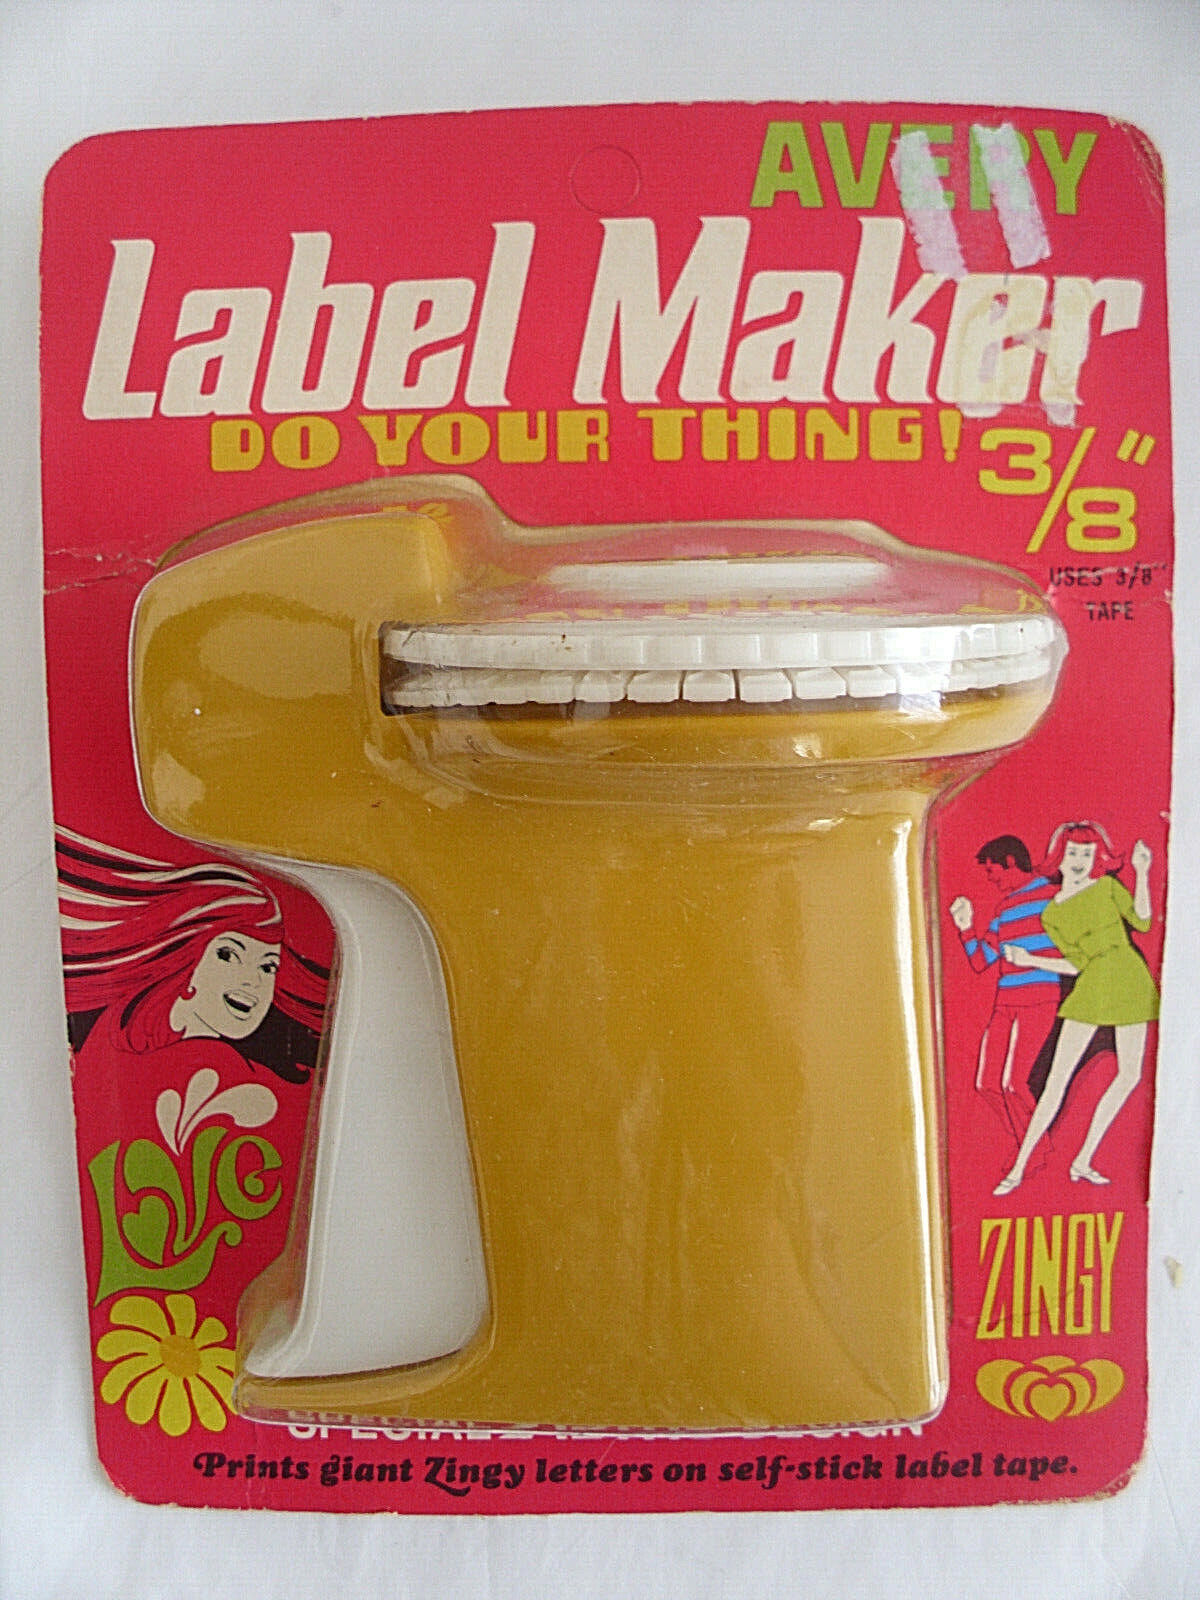 Vintage late 60s Avery Label Maker New in Groovy Packaging!